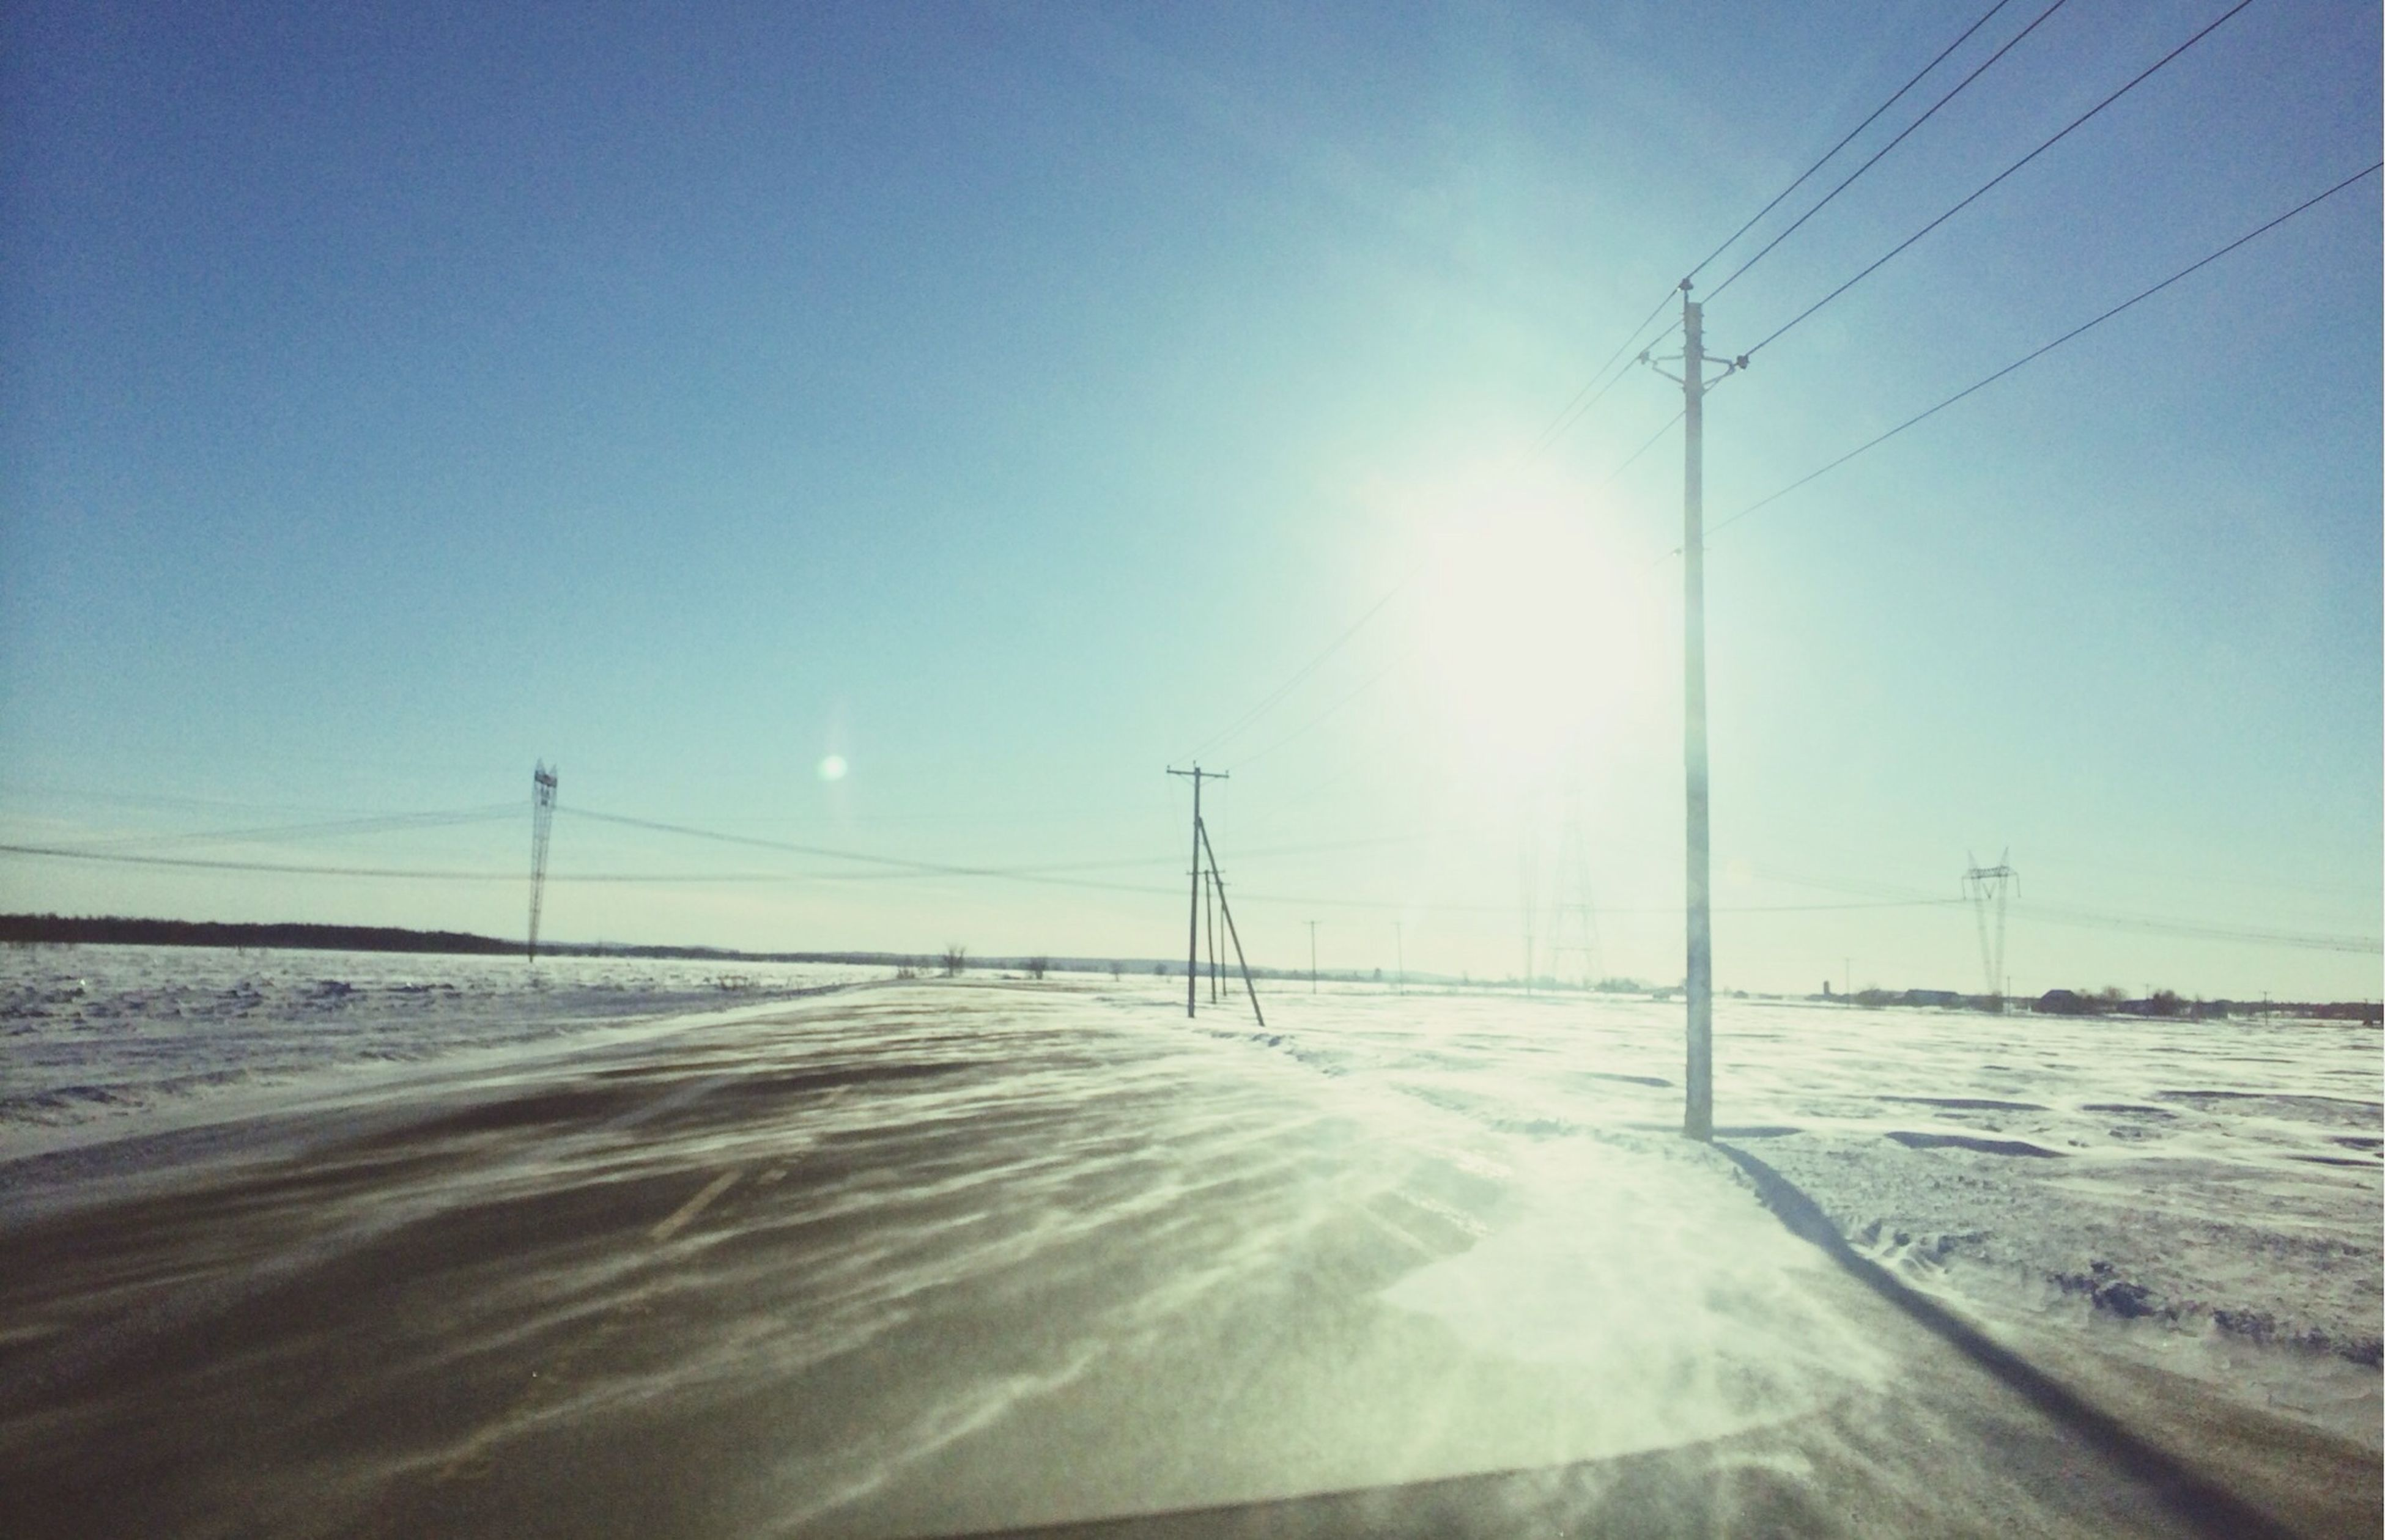 sun, snow, electricity pylon, cold temperature, winter, sunlight, electricity, sunbeam, clear sky, sky, tranquility, power line, nature, blue, tranquil scene, lens flare, road, beauty in nature, fuel and power generation, scenics